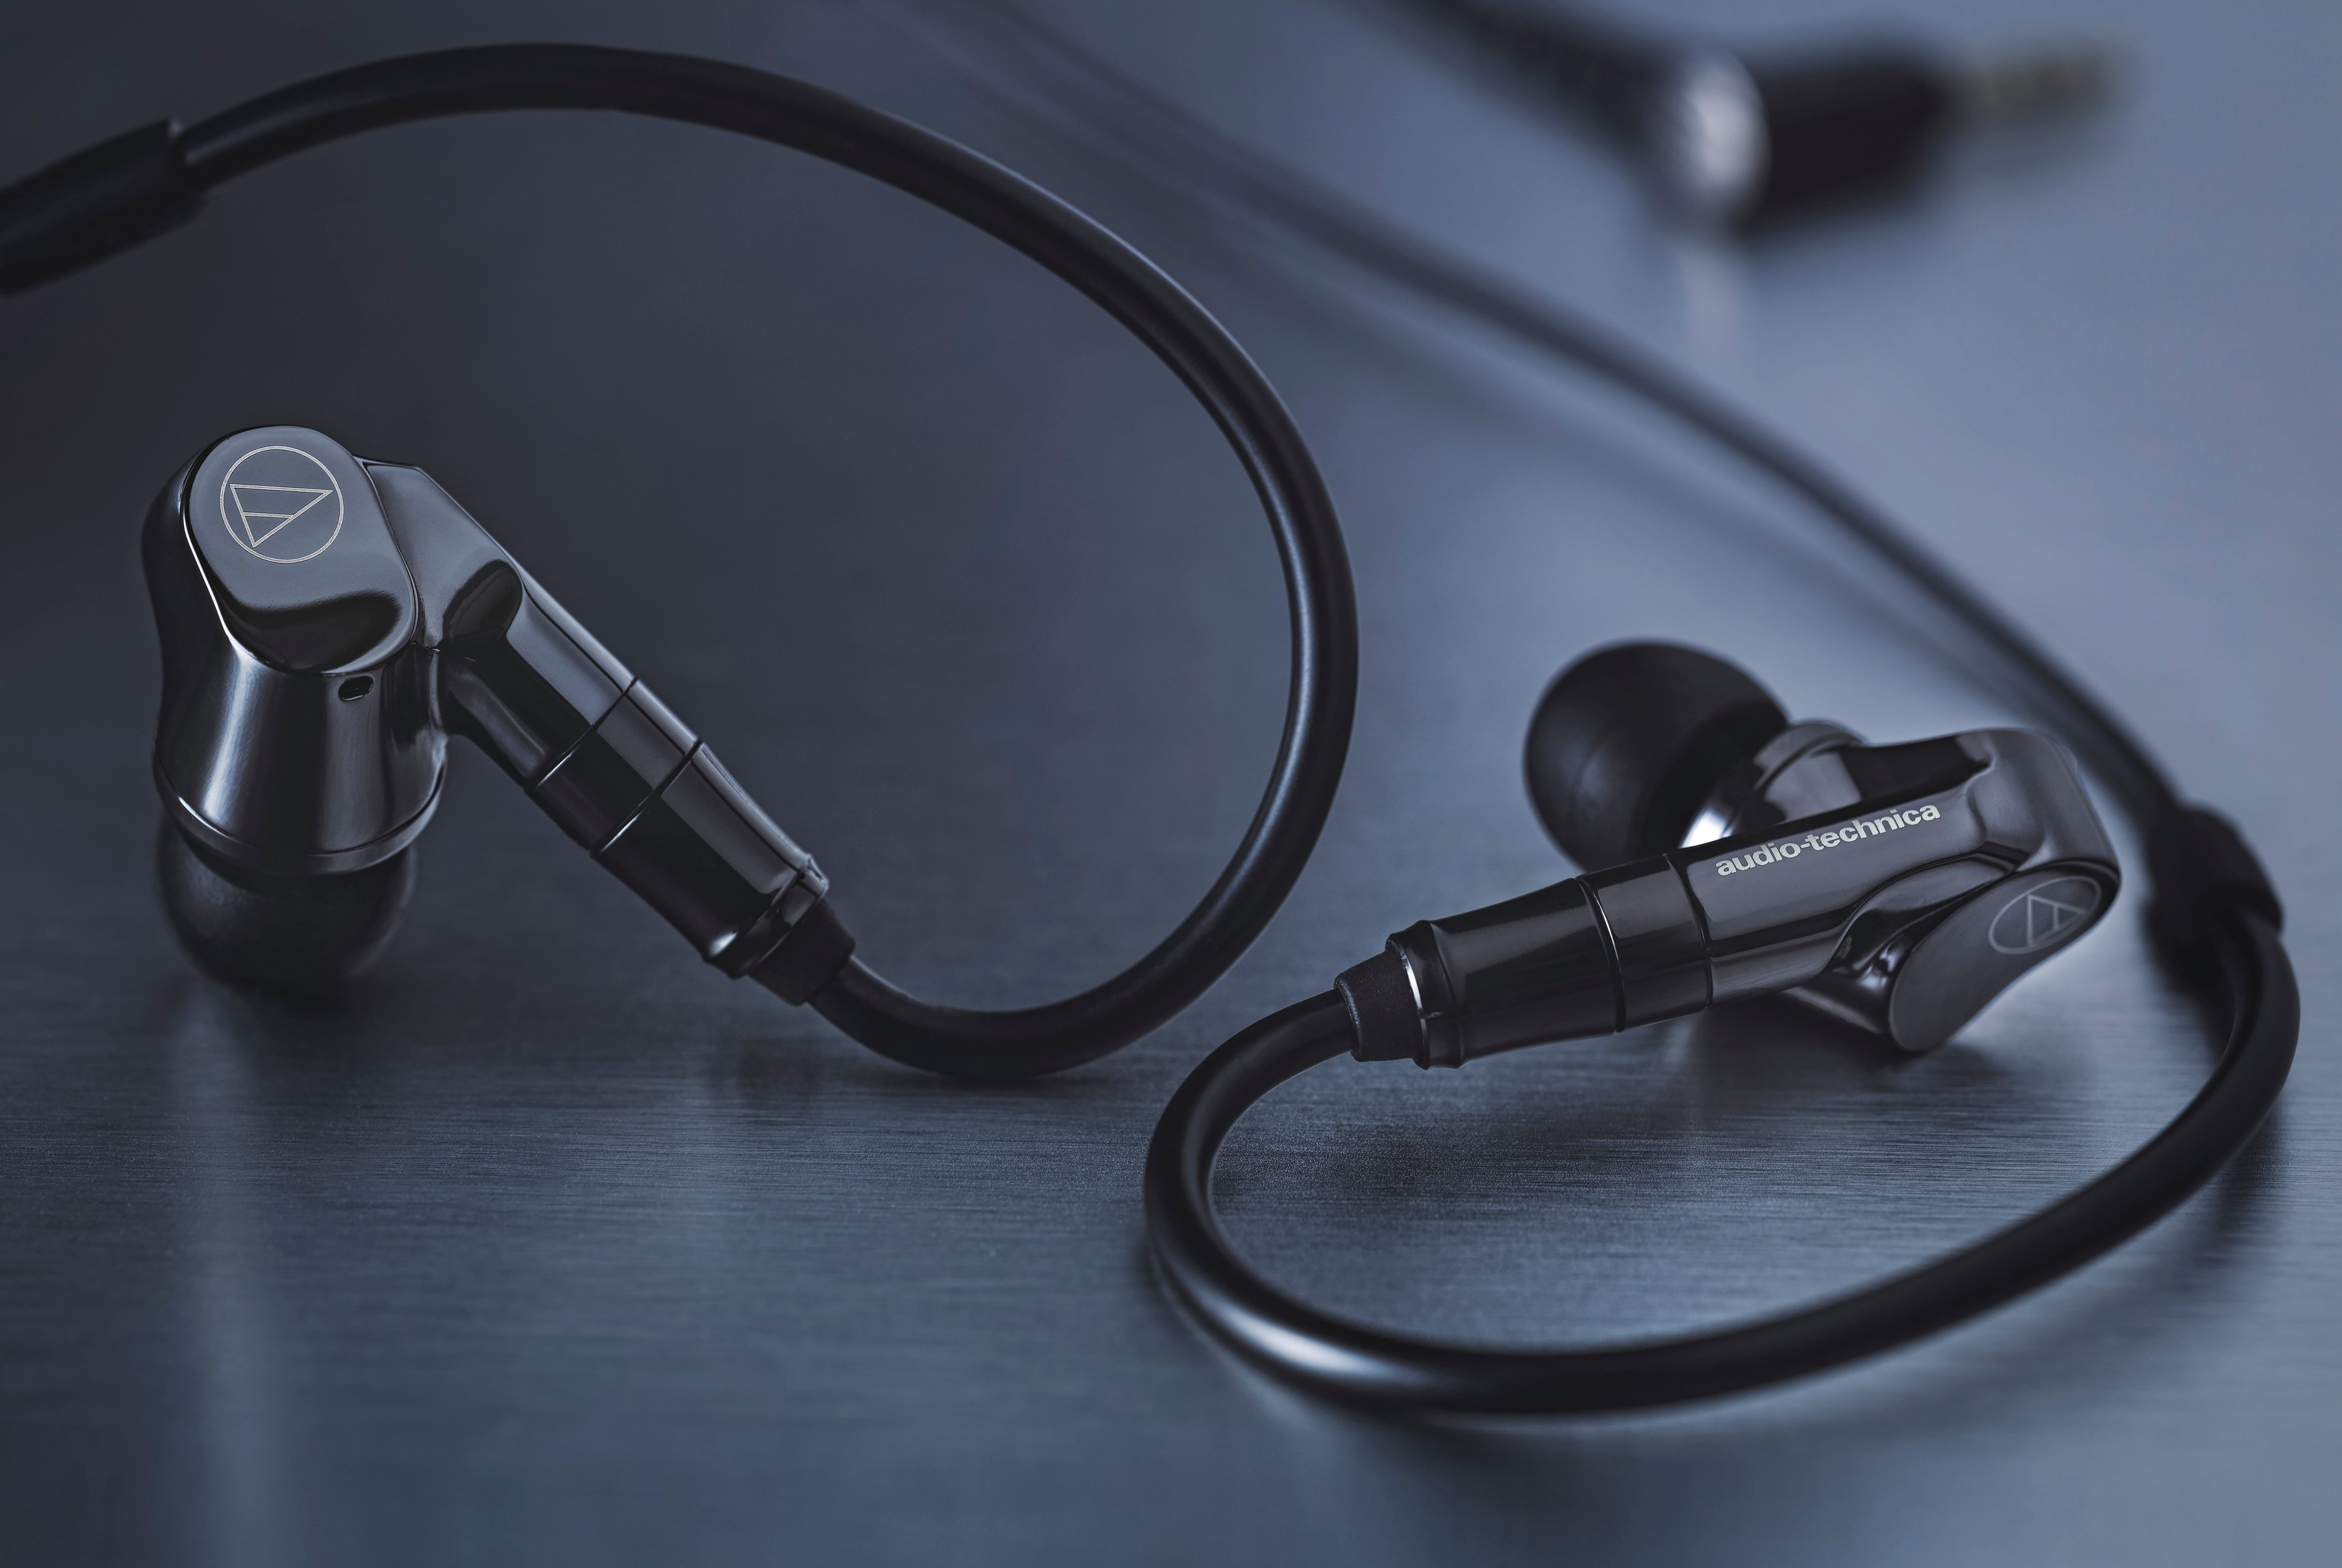 ATH-IEX1 In-Ear Hybrid Multidriver Headphones on the desk with beautiful reflections coming off the desk surface.